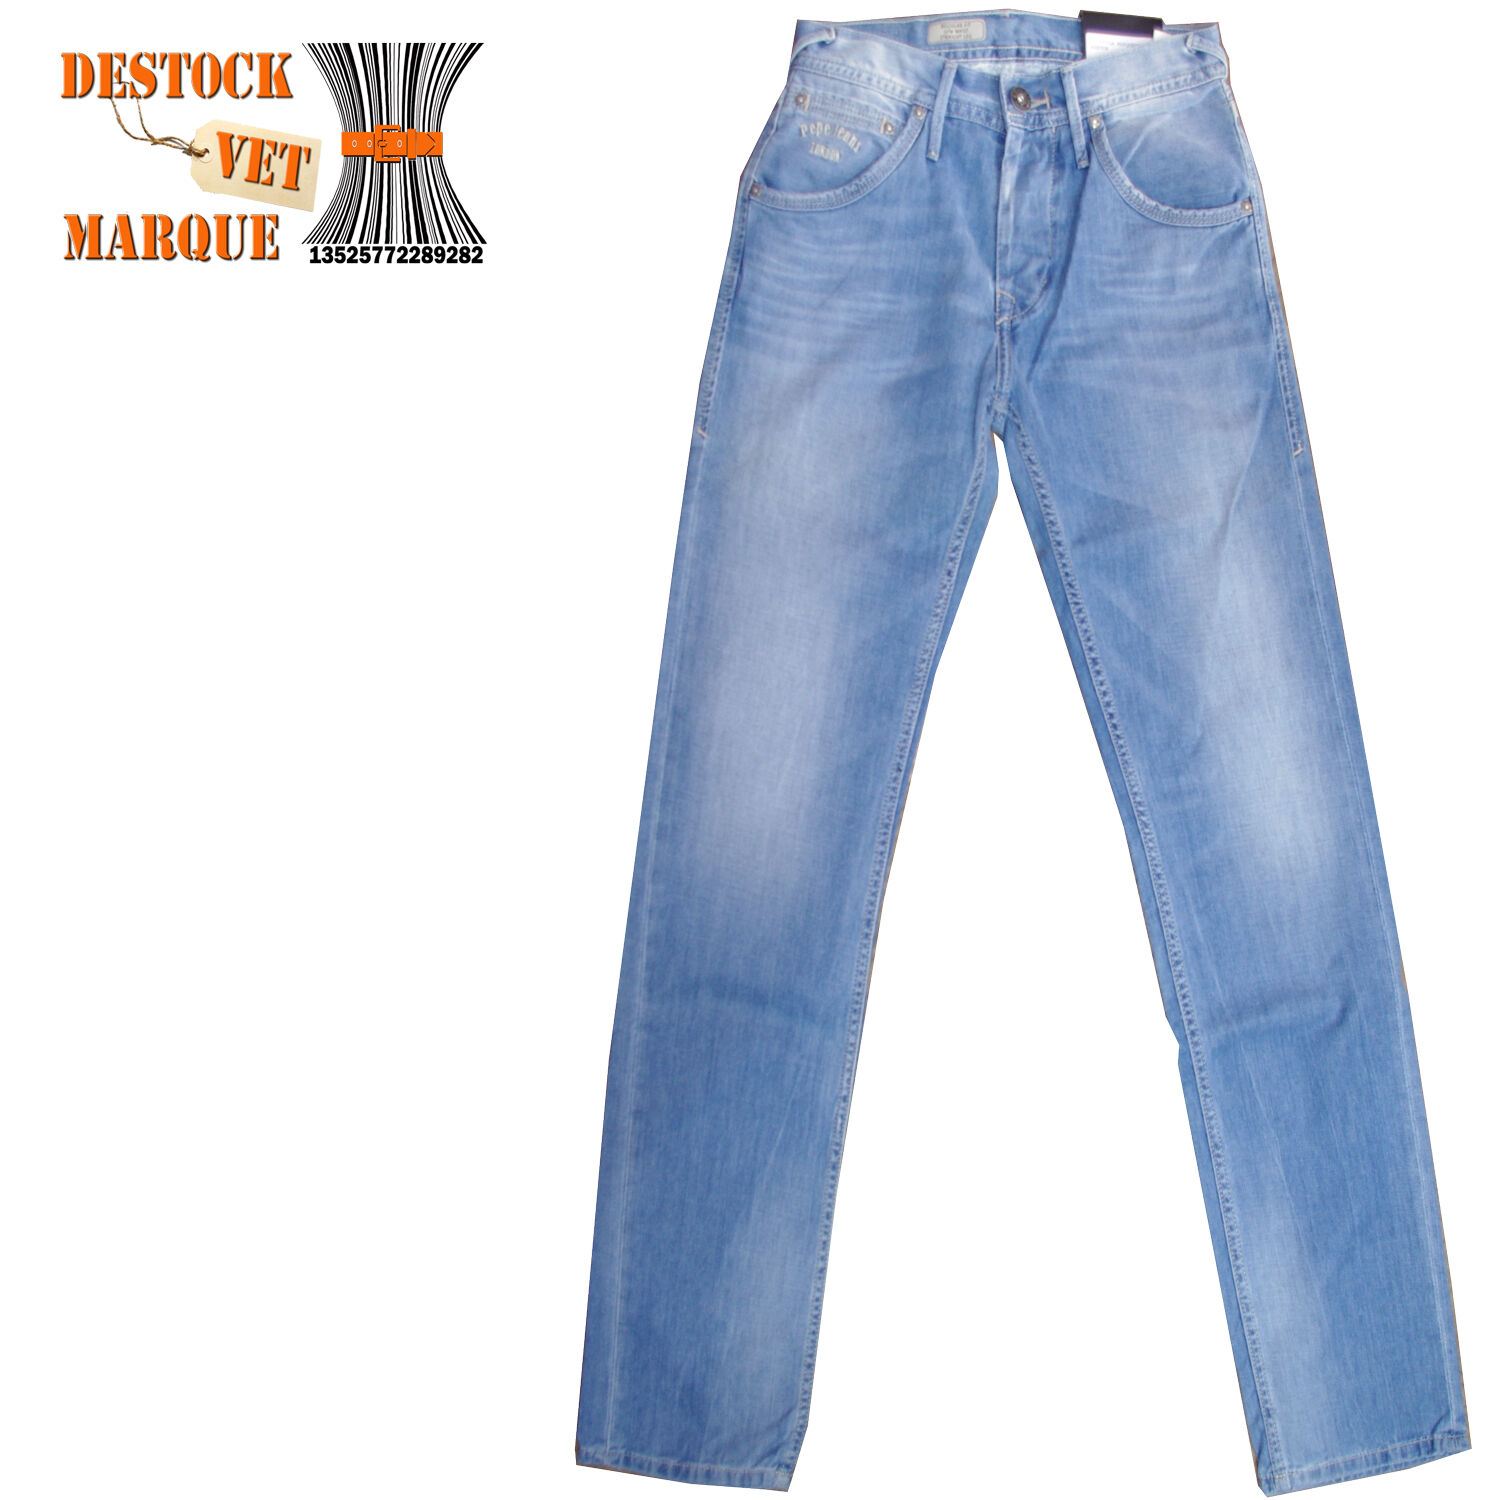 PEPE JEANS  LONDON Jeans regular HOXTON used homme W 28 L 32 size US